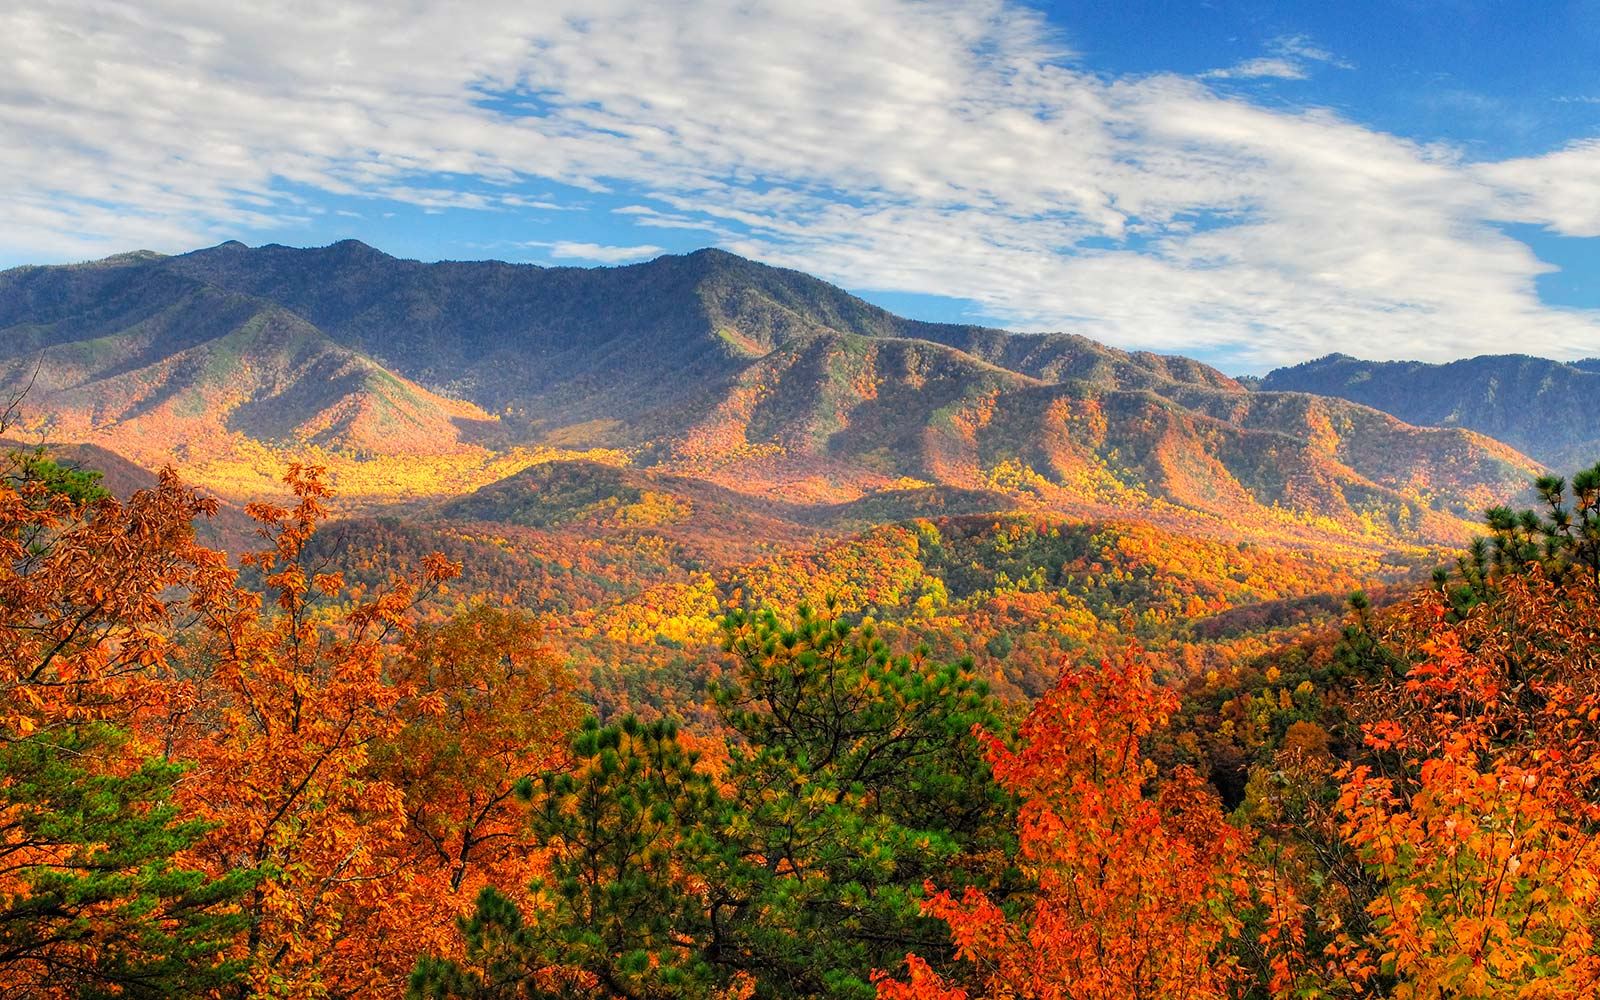 smoky-mountains-national-park-tennessee-NATENQUIRER0317.jpg